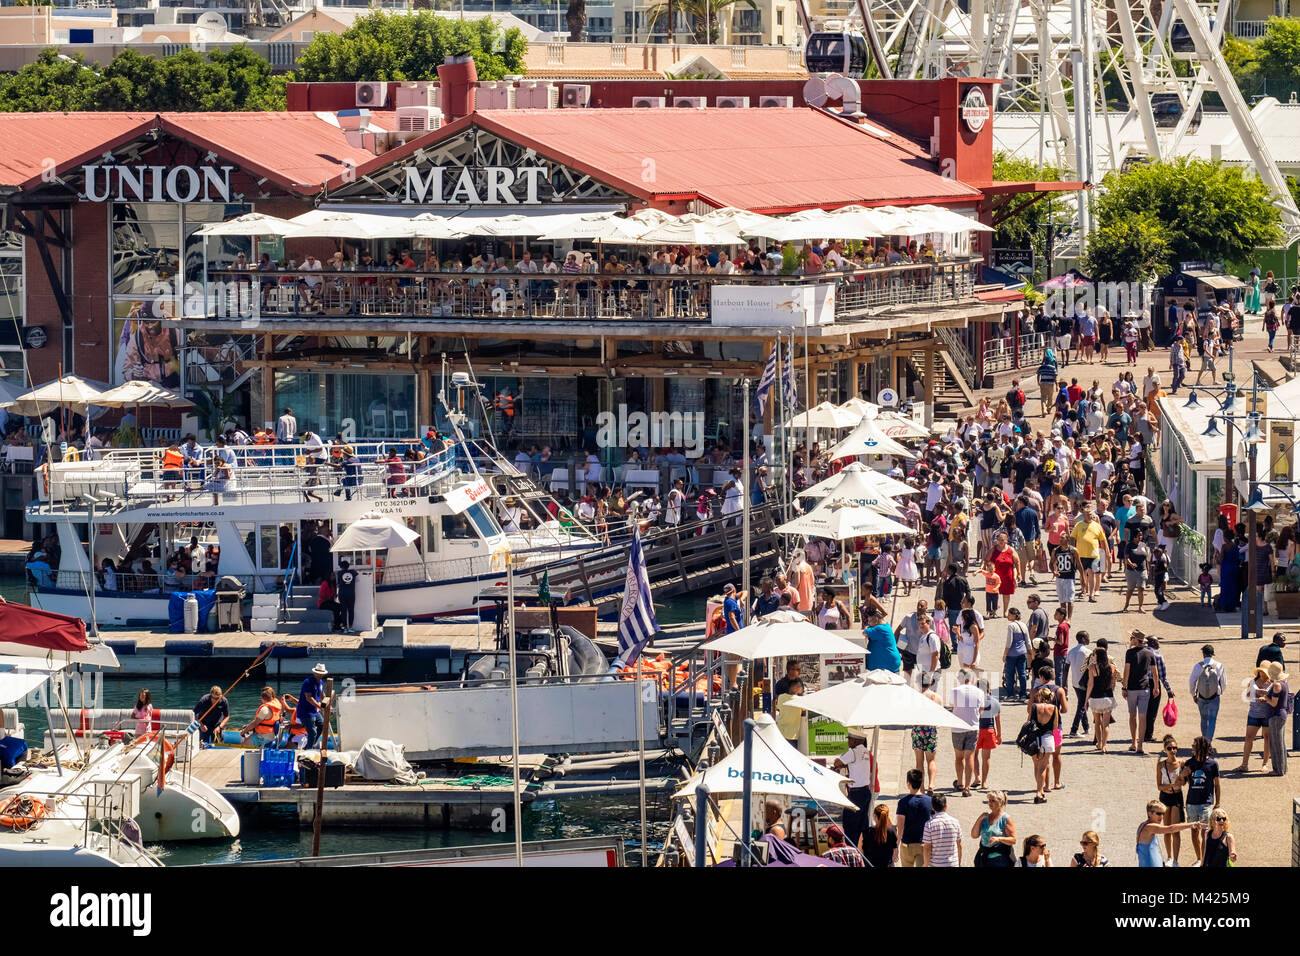 V&A Waterfront, and Cape Union Mart in Cape Town city, South Africa busy with people shopping in summer - Stock Image